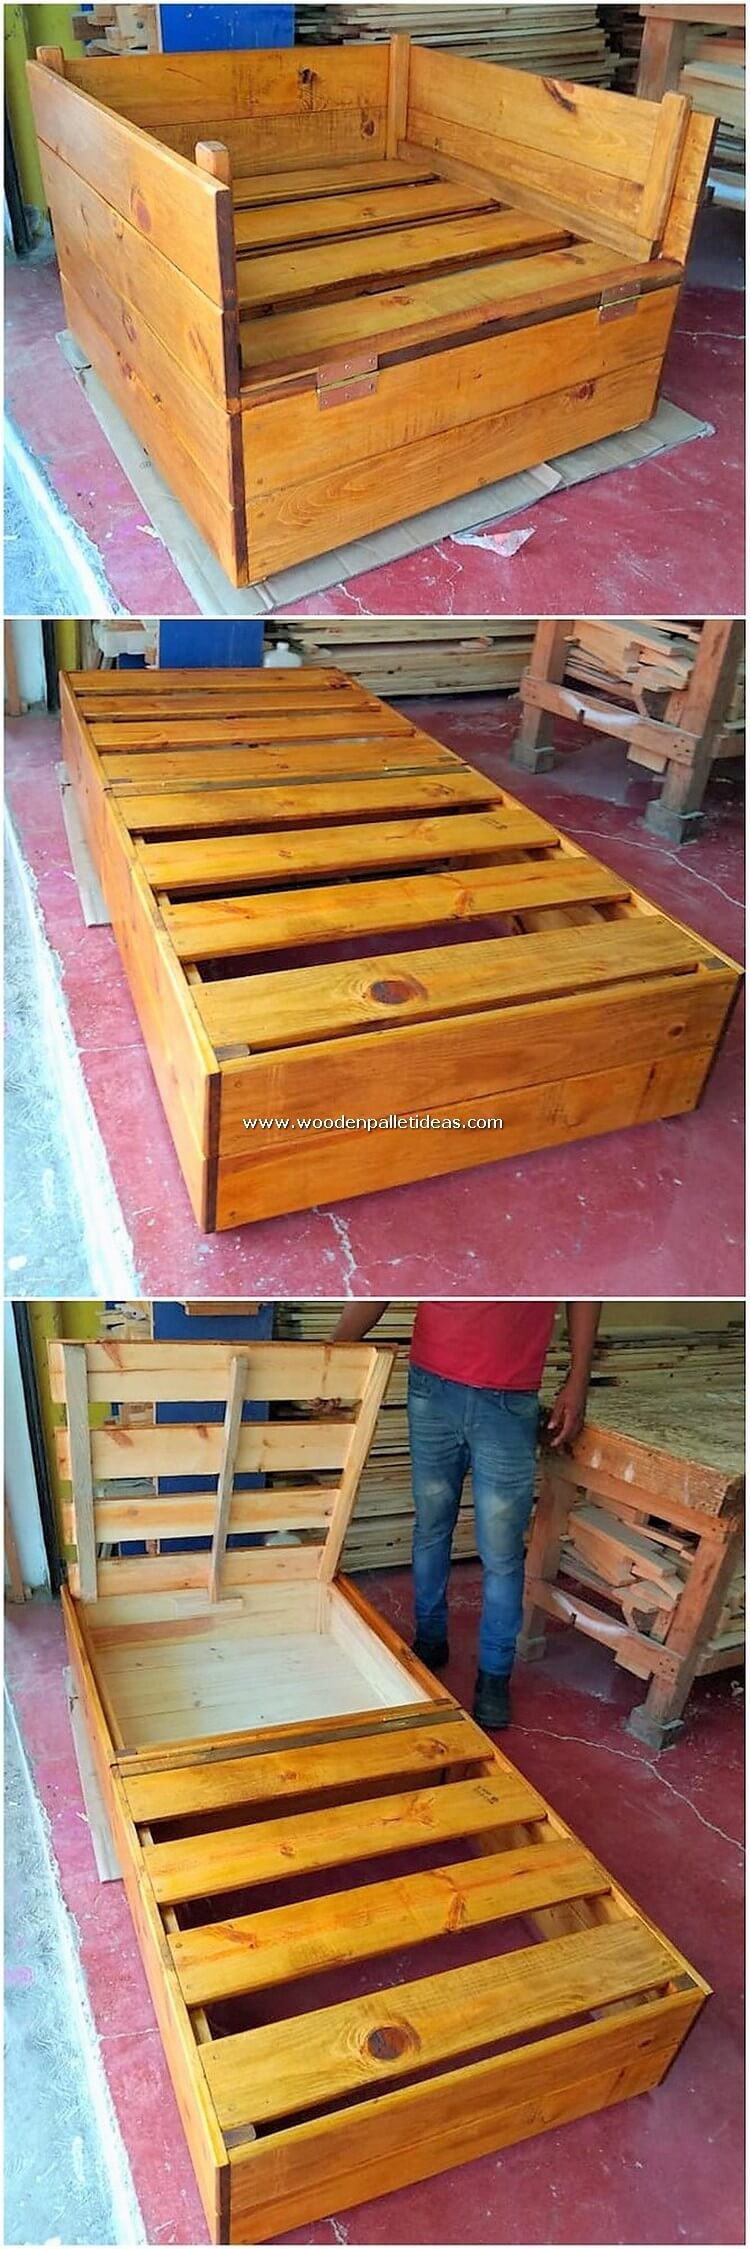 Pallet Chair and Convertible Bed